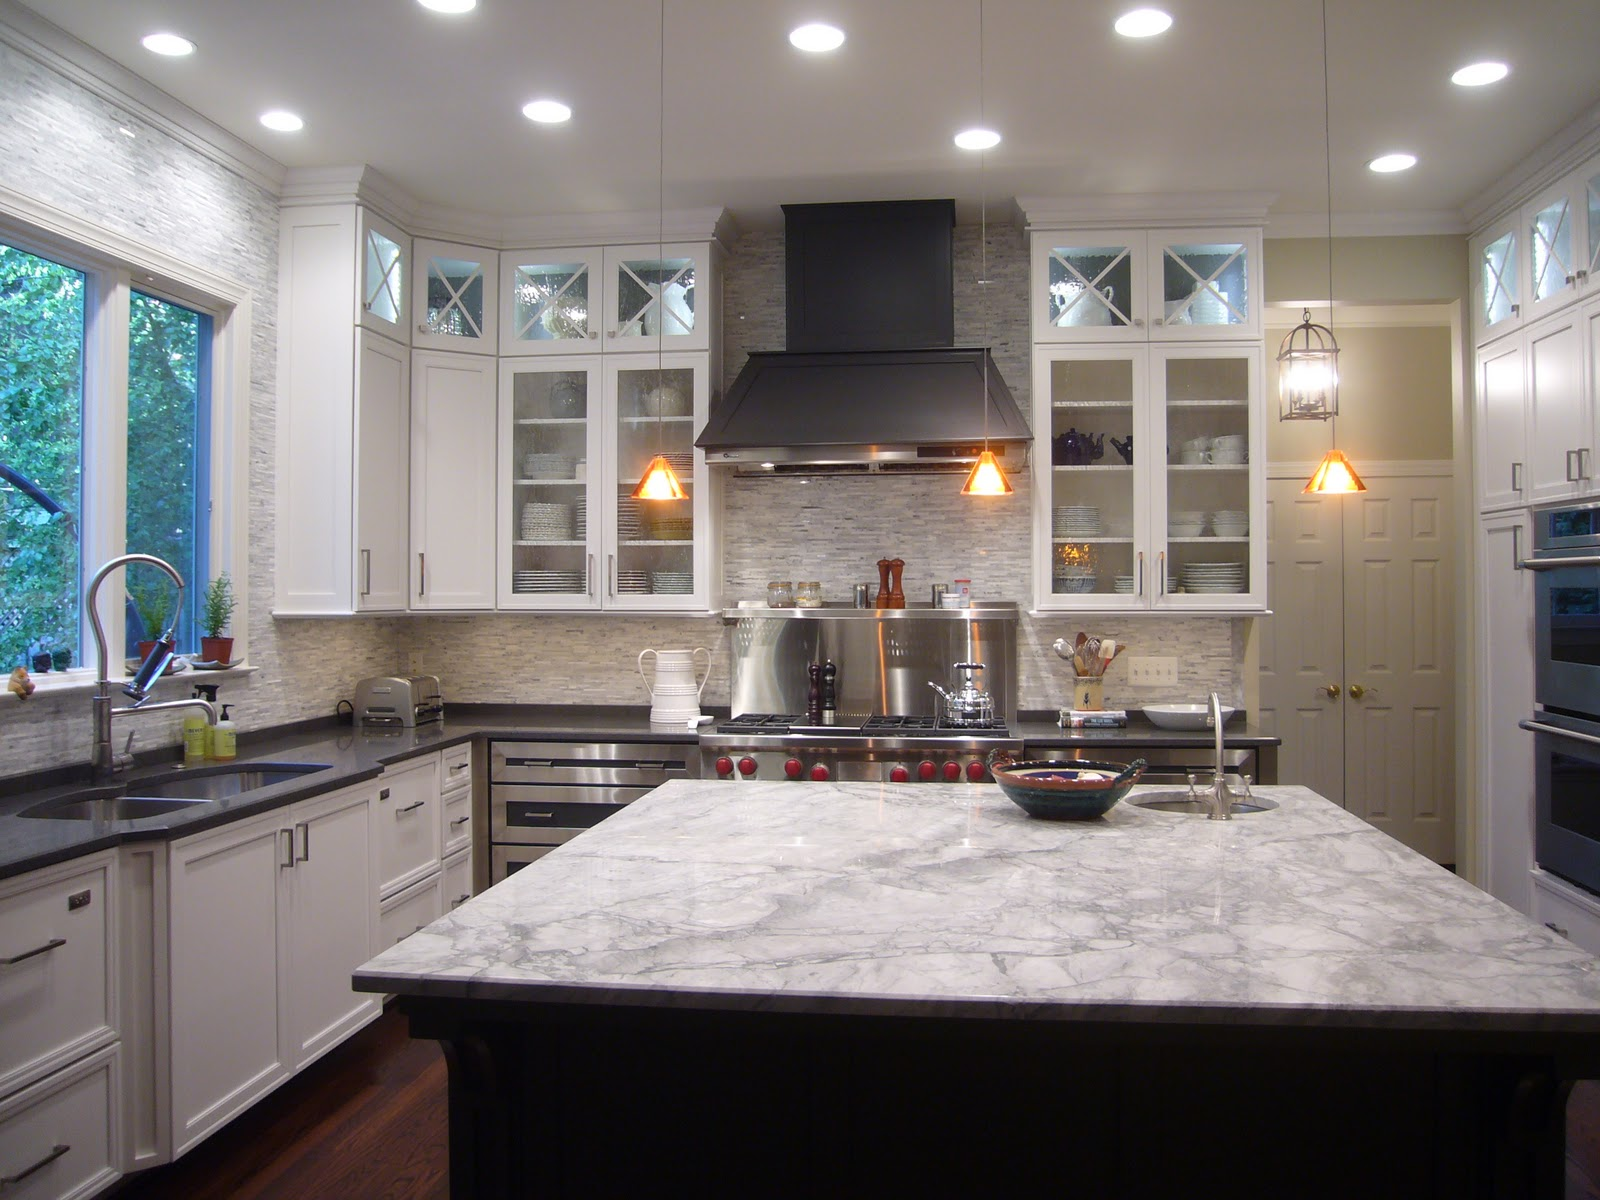 engineered quartz surfacing for the perimeter cabinetry counter tops